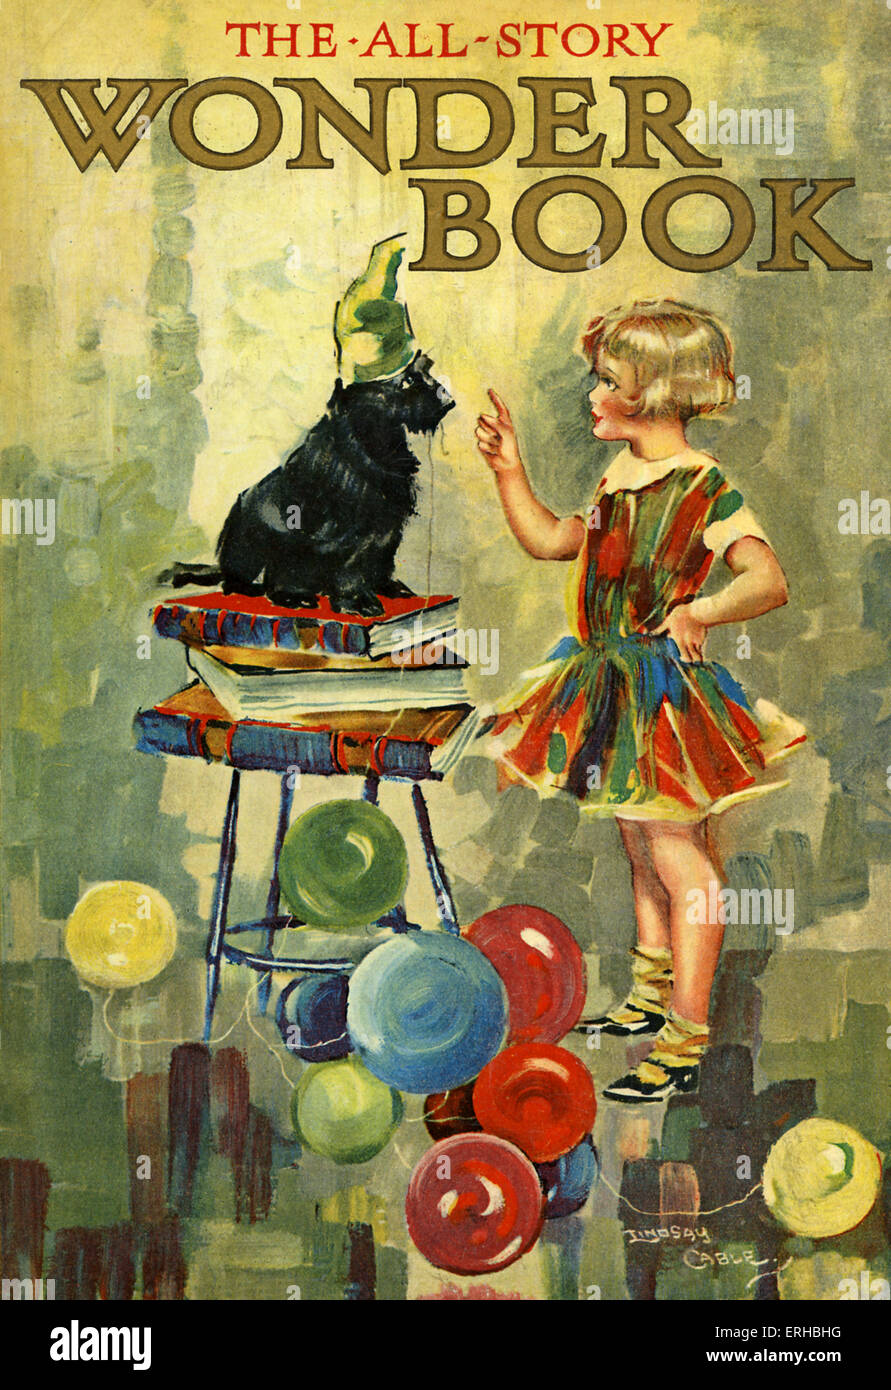 The All-Story Wonder Book, illustration by W. Lindsay Cable. A child teaches a dog to stand upon a pile of books - Stock Image